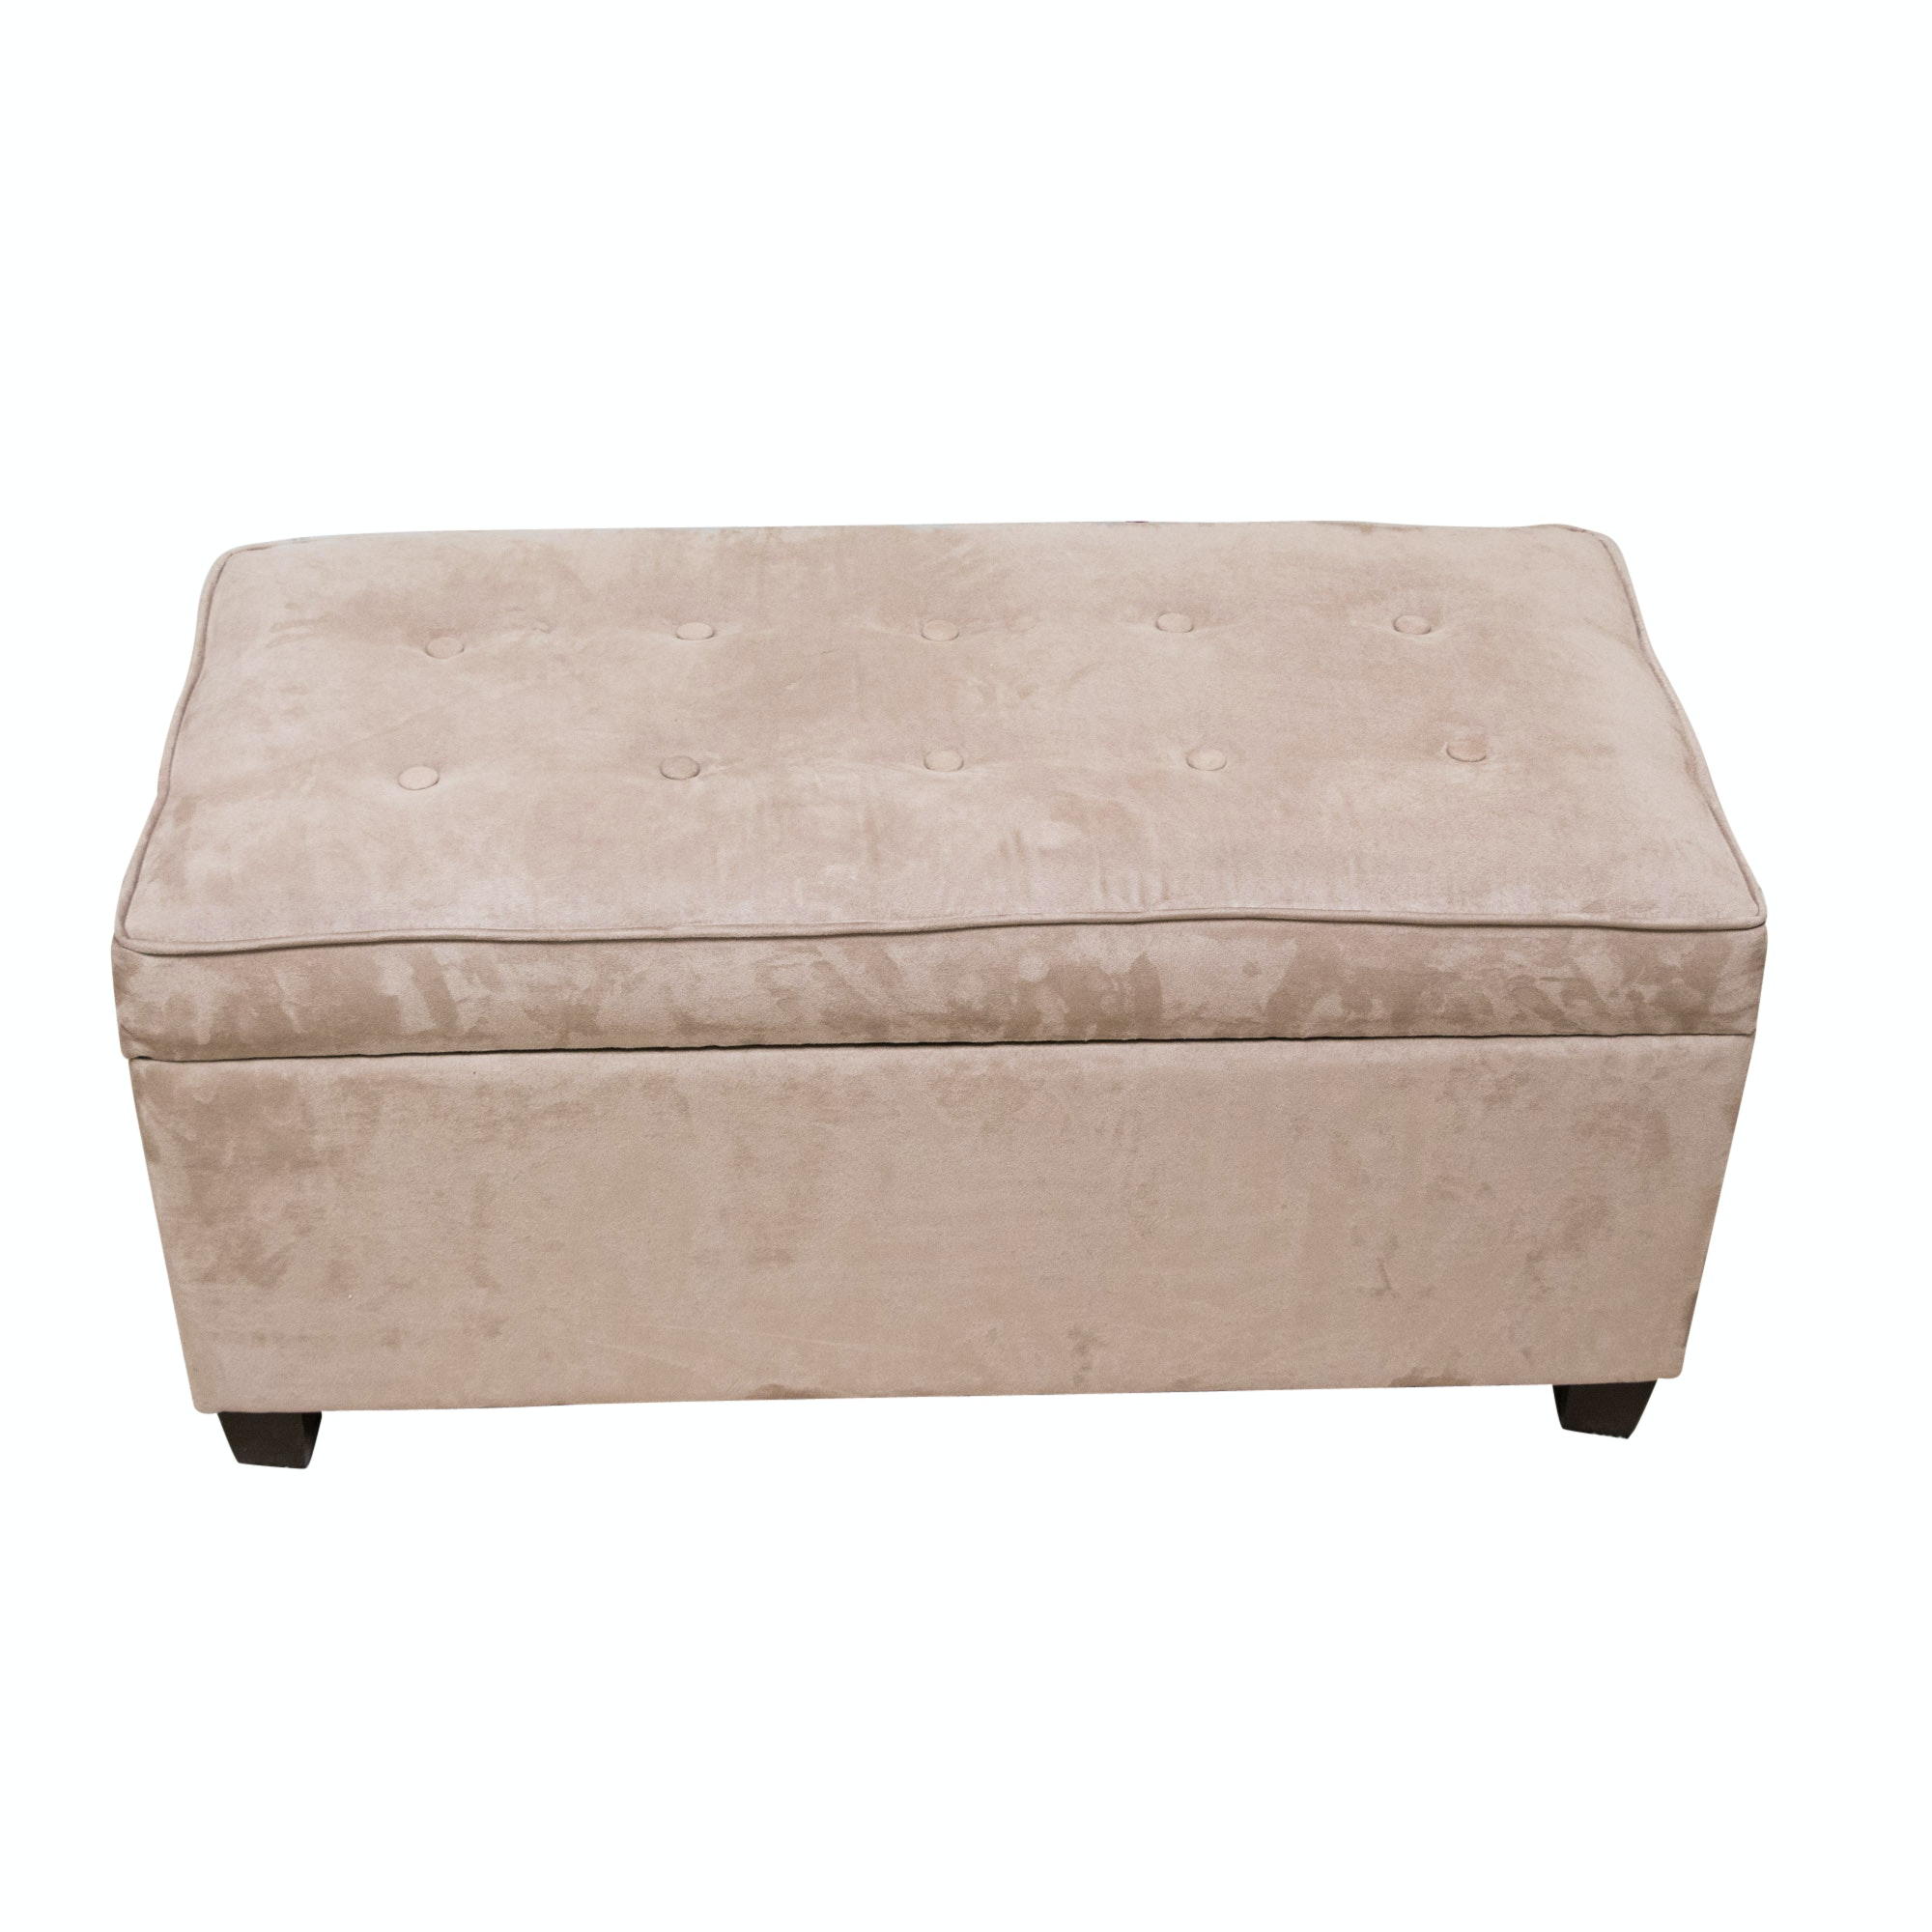 Upholstered Contemporary Storage Ottoman ...